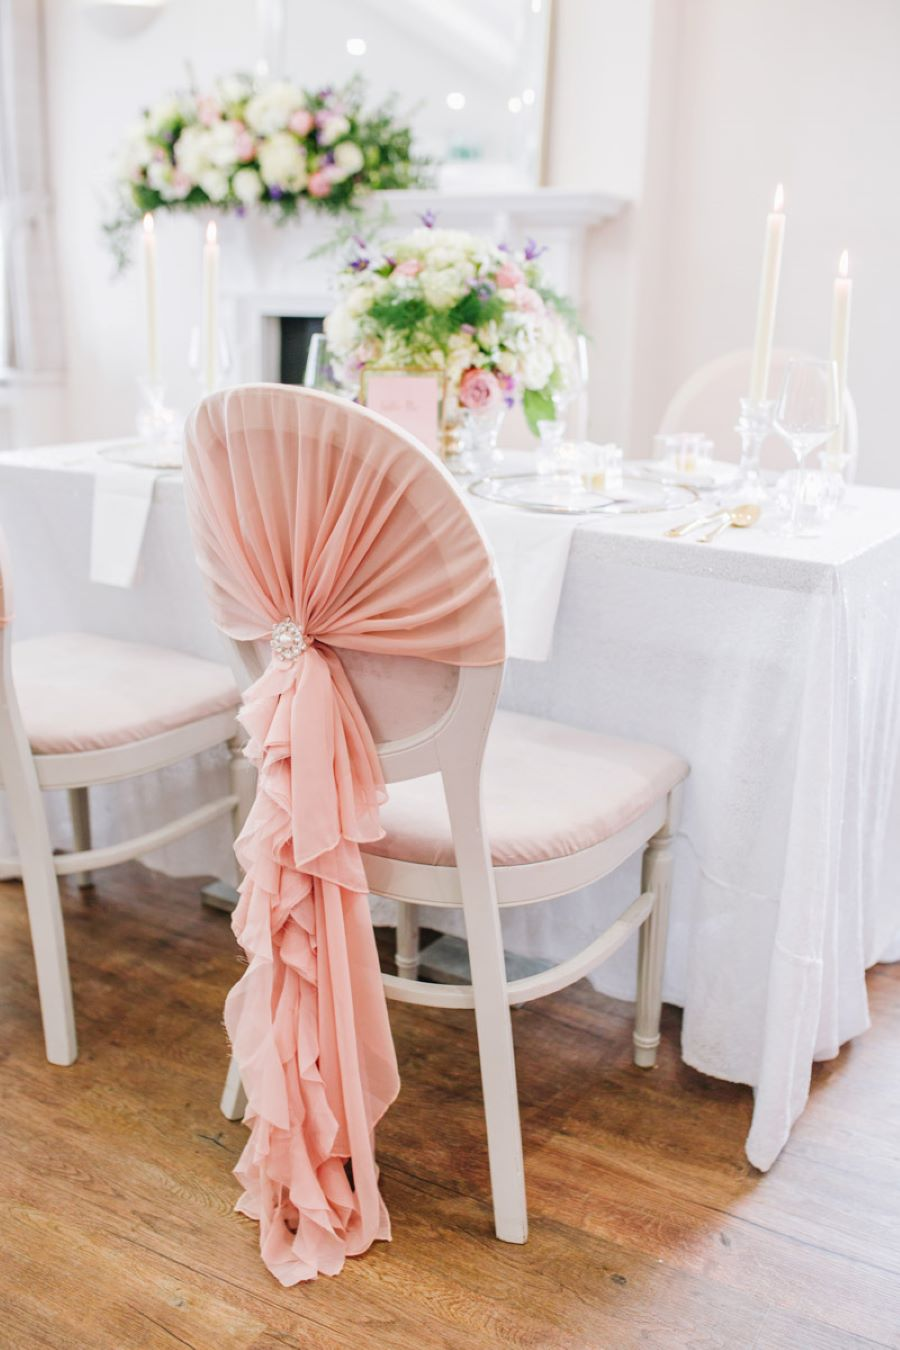 Light and romance with natural blush tones - wedding ideas from Downham Hall. Photographer credit Magical Moments Photography (29)